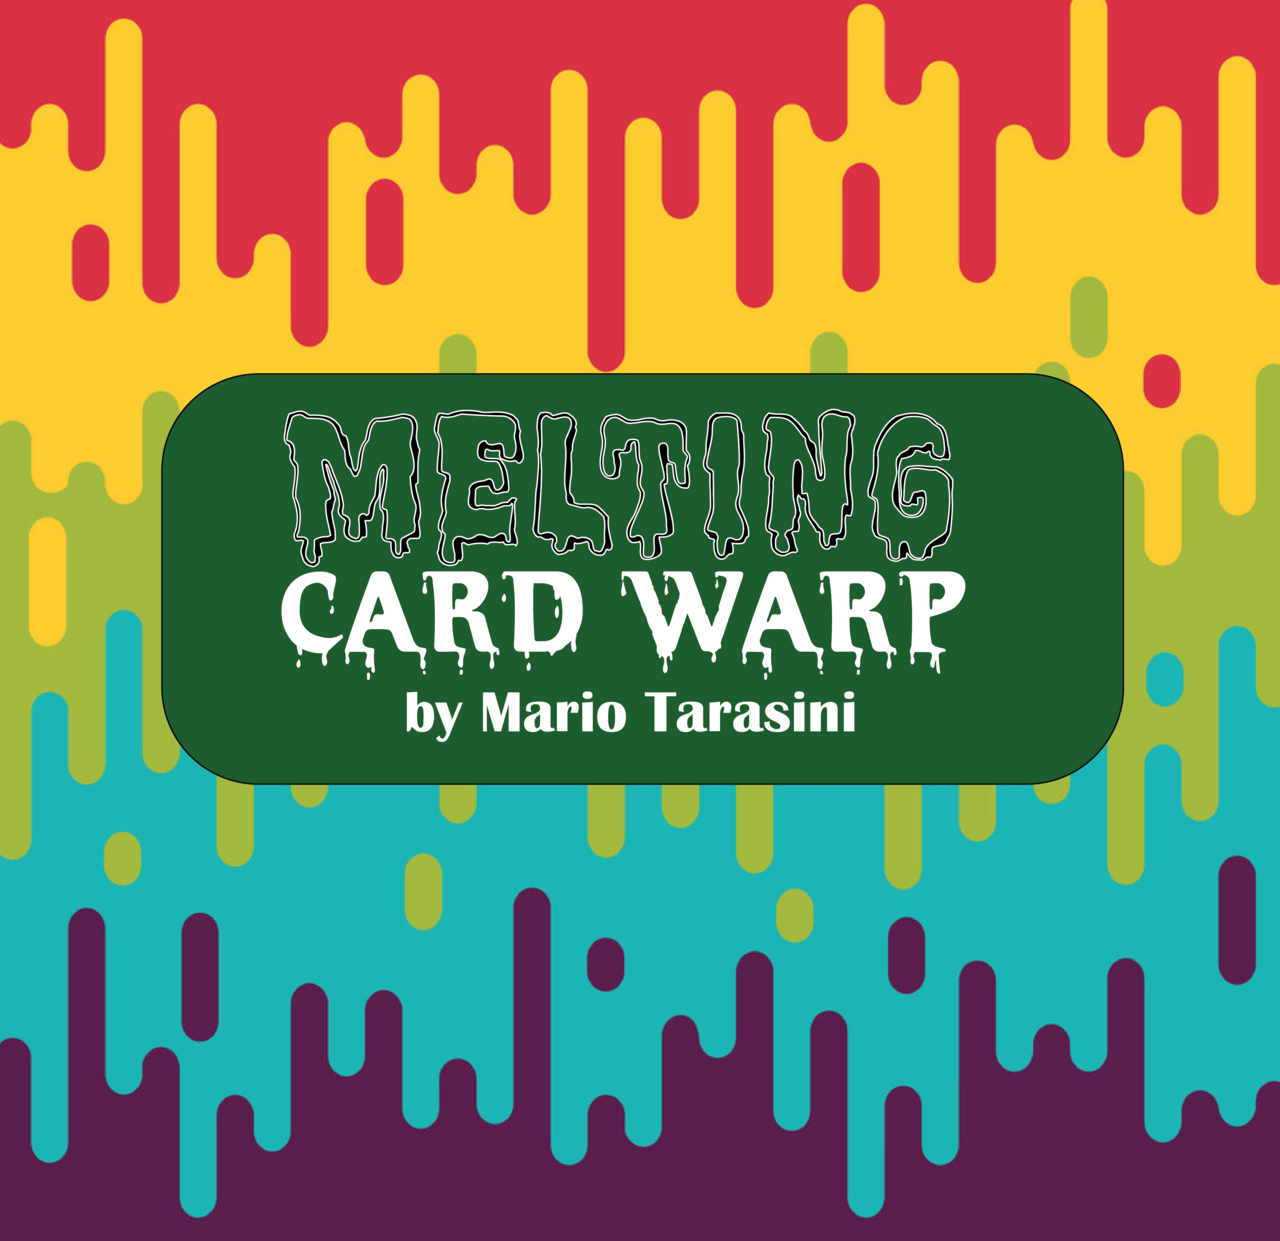 Melting Card Warp by Mario Tarasini (MP4 Video Download)